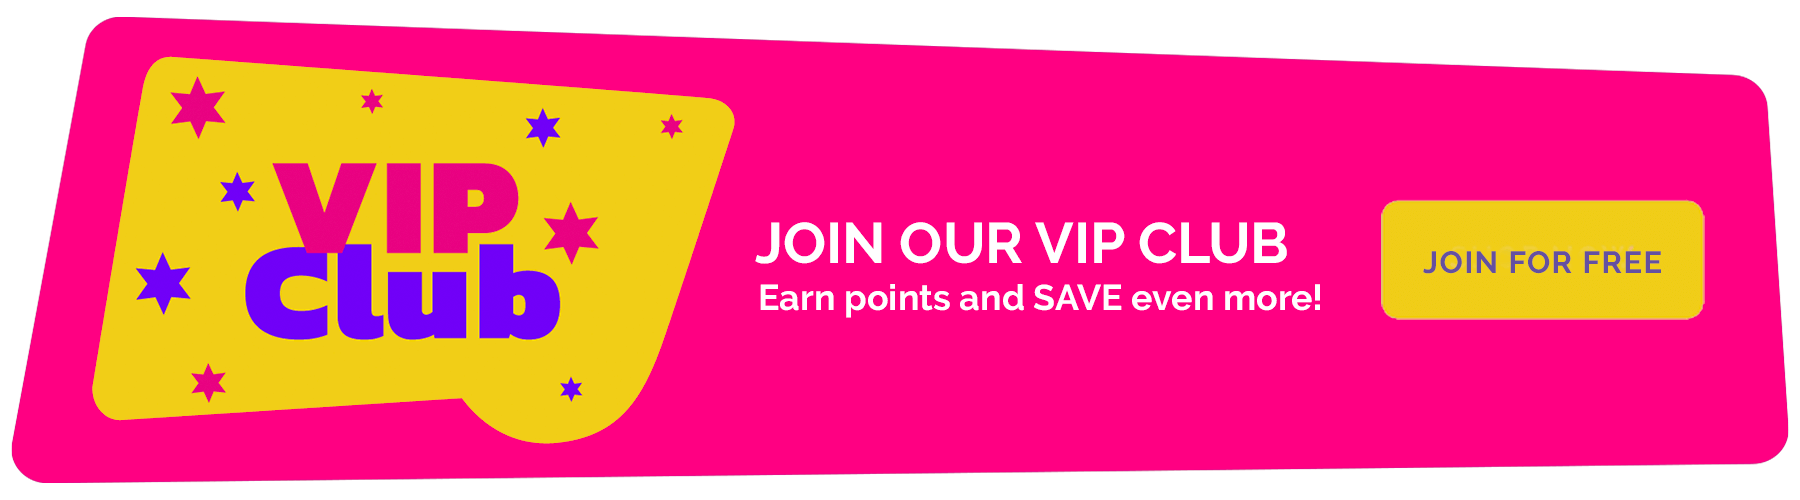 VIP Club. Join and save even more!